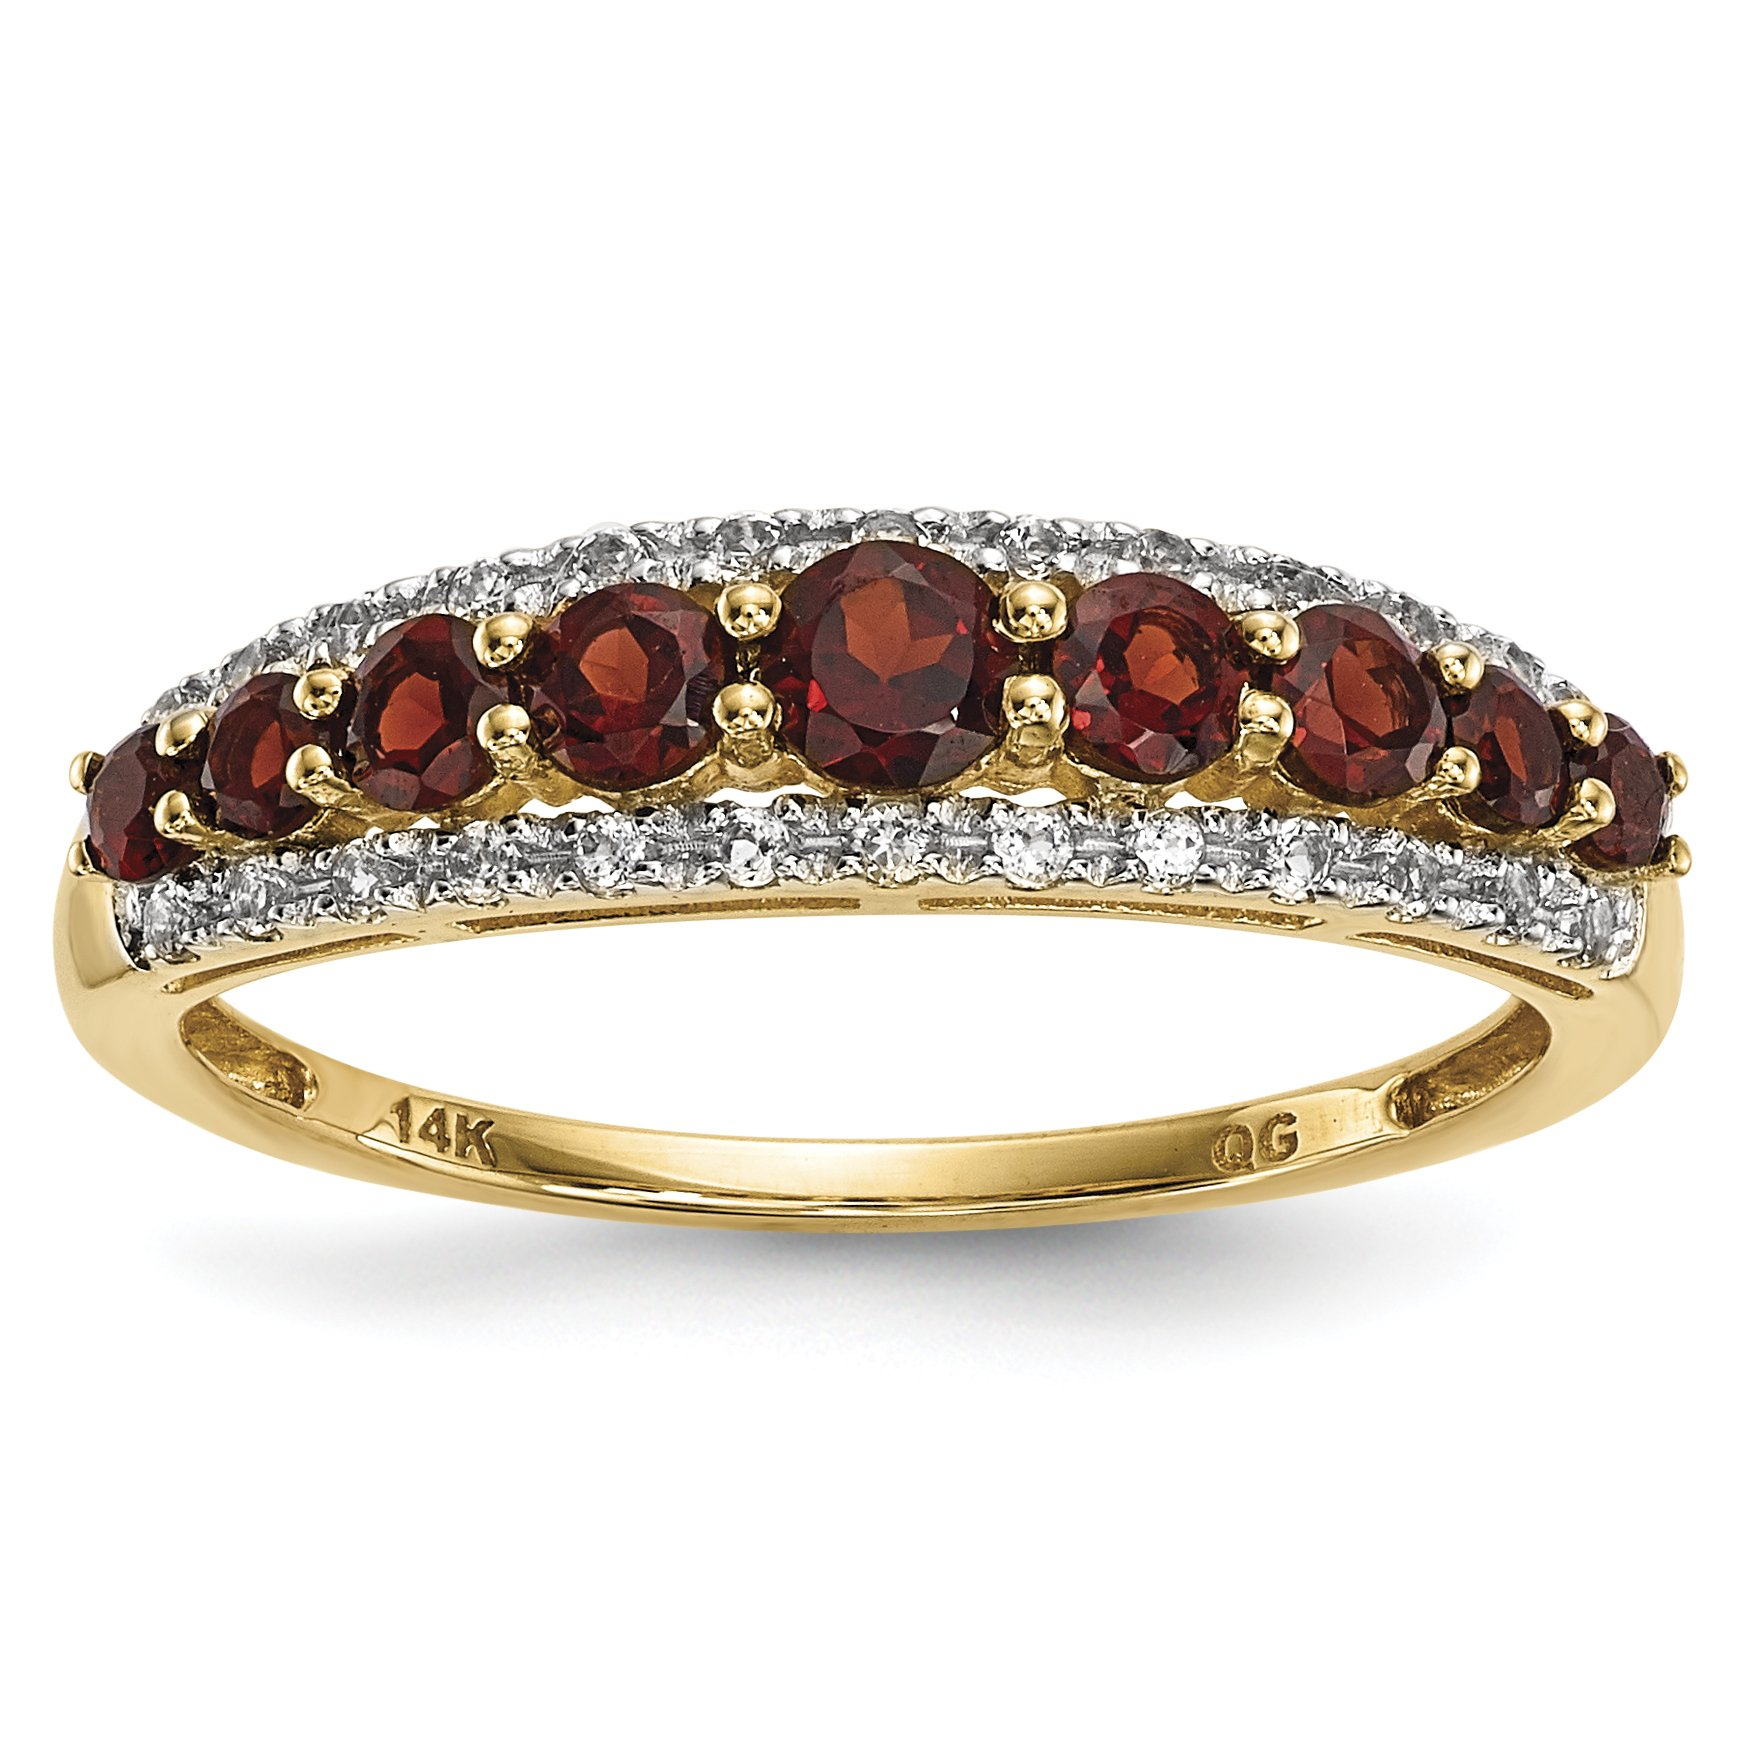 ICE CARATS 14k Yellow Gold Mozambique Red Garnet White Topaz Band Ring Size 7.00 Gemstone Fine Jewelry Gift Set For Women Heart